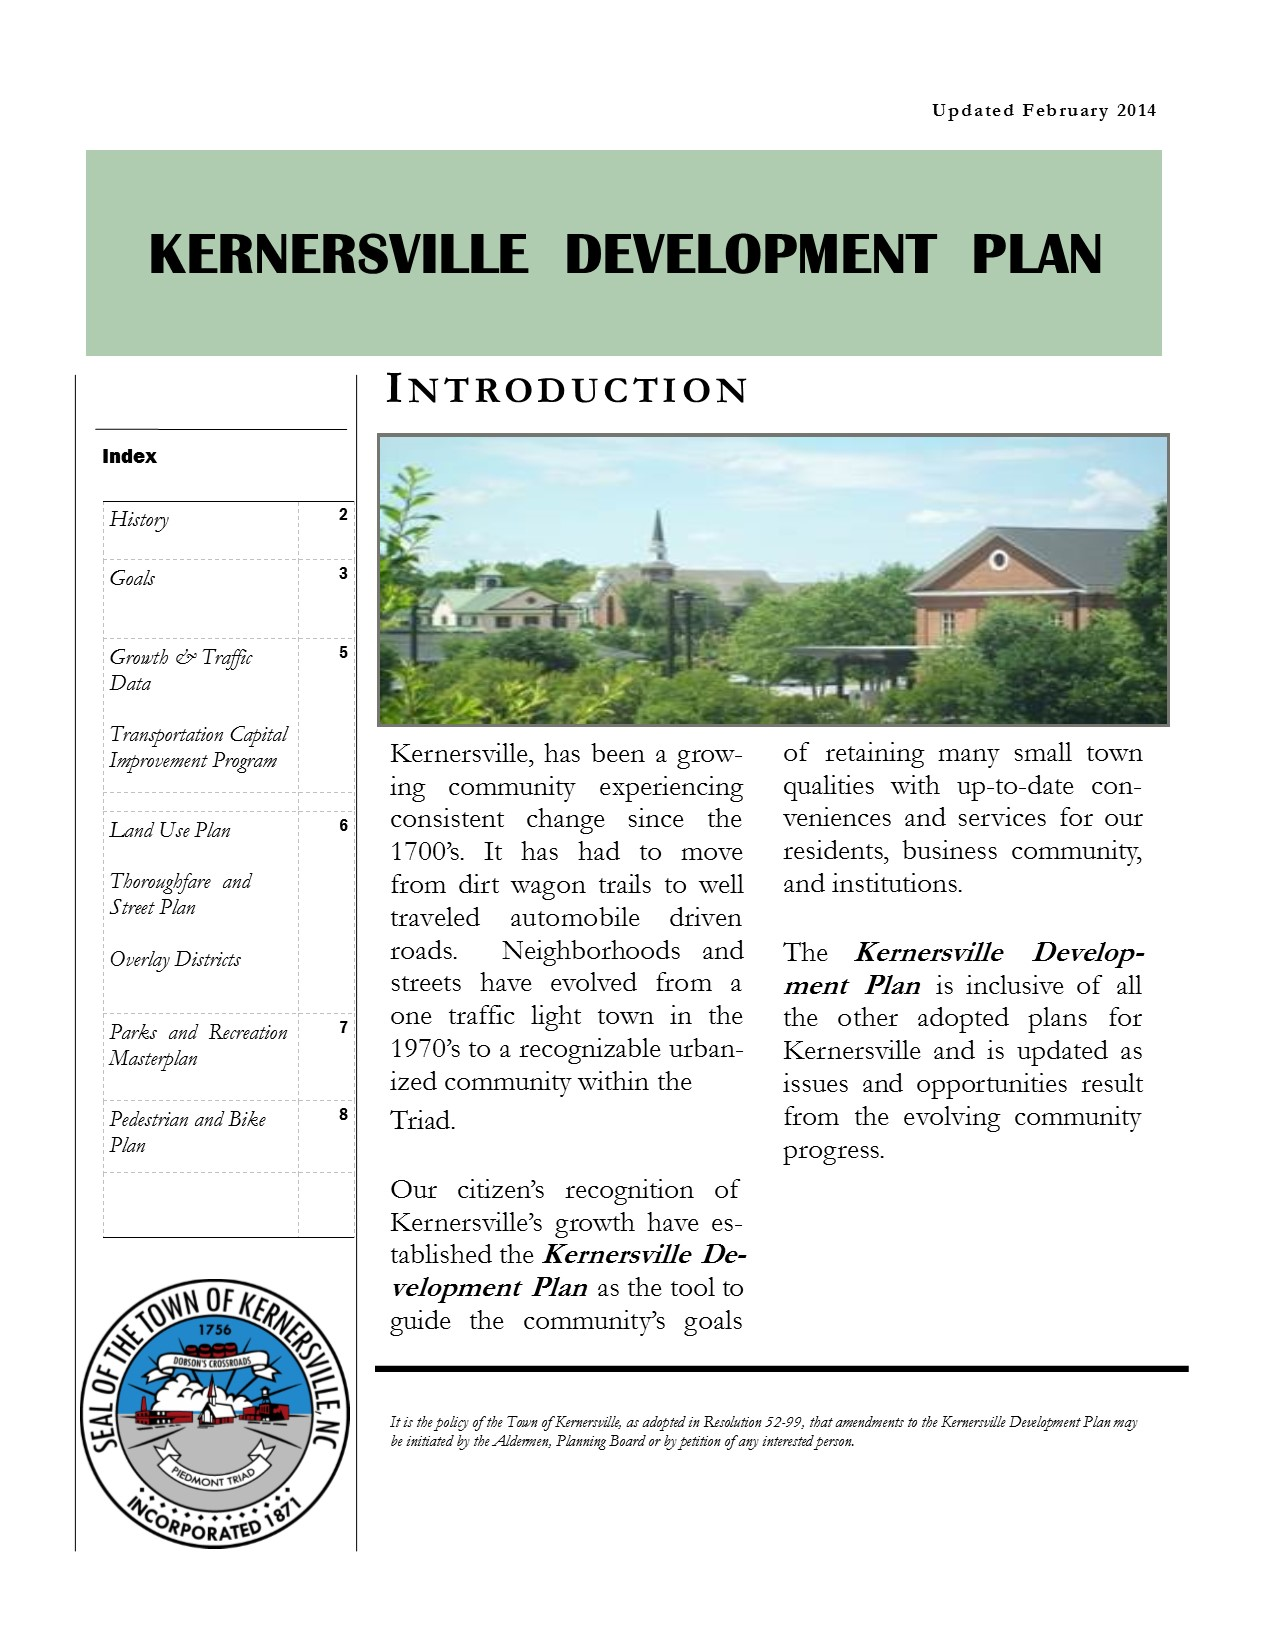 Kernersville Development Plan